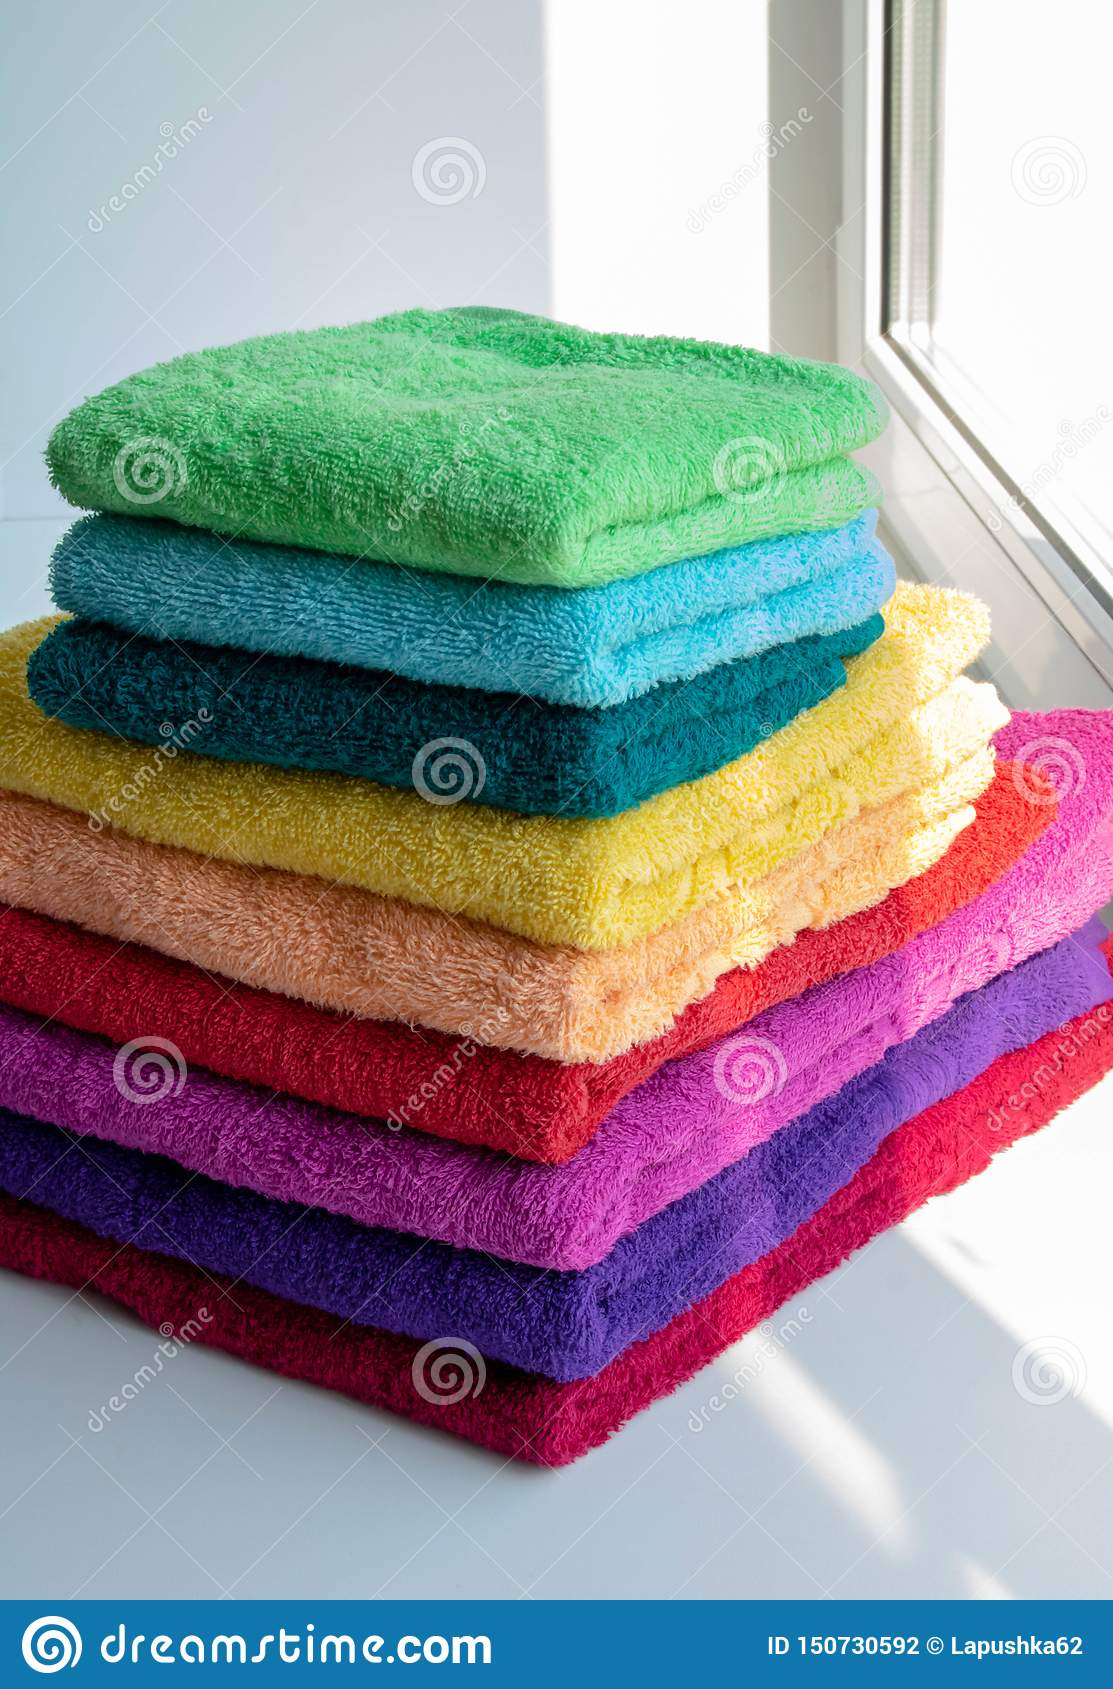 Colored towels on a sunny window